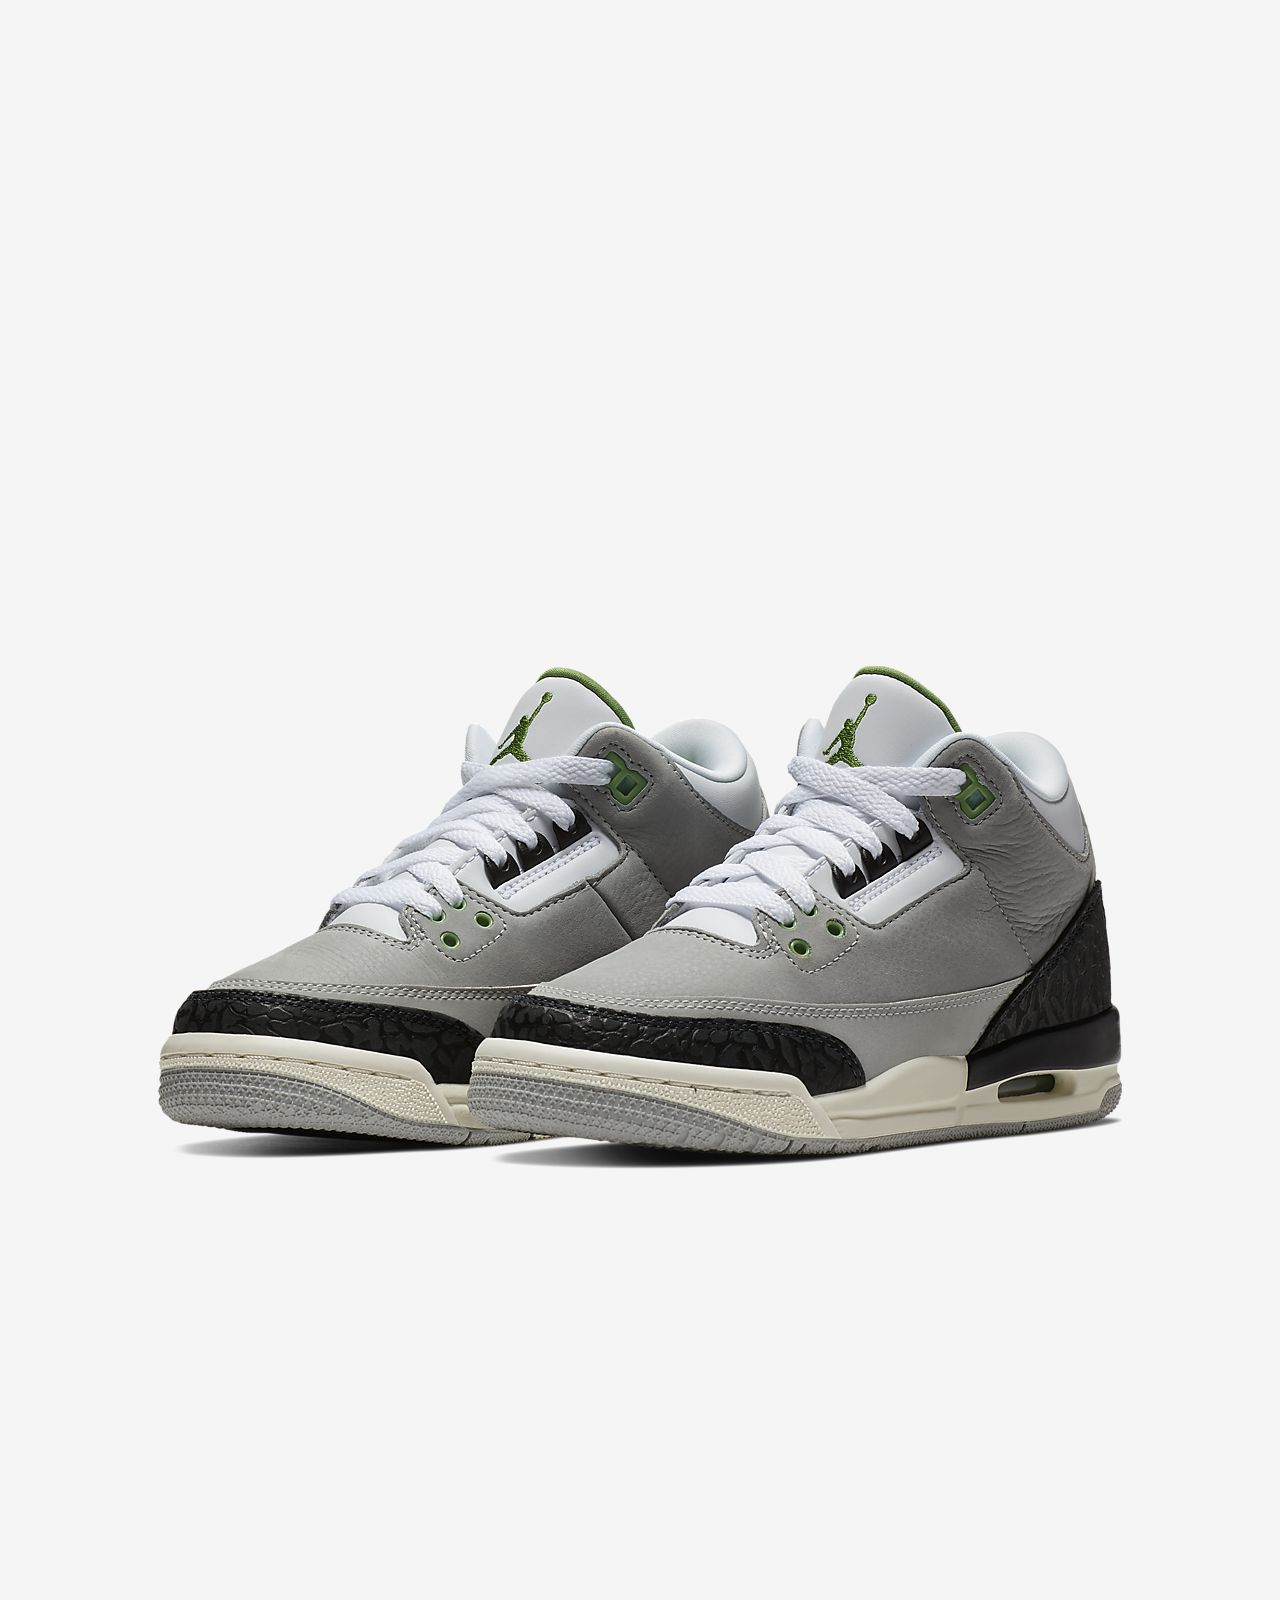 6a5358d6b8b347 Low Resolution Air Jordan 3 Retro Kids  Shoe Air Jordan 3 Retro Kids  Shoe